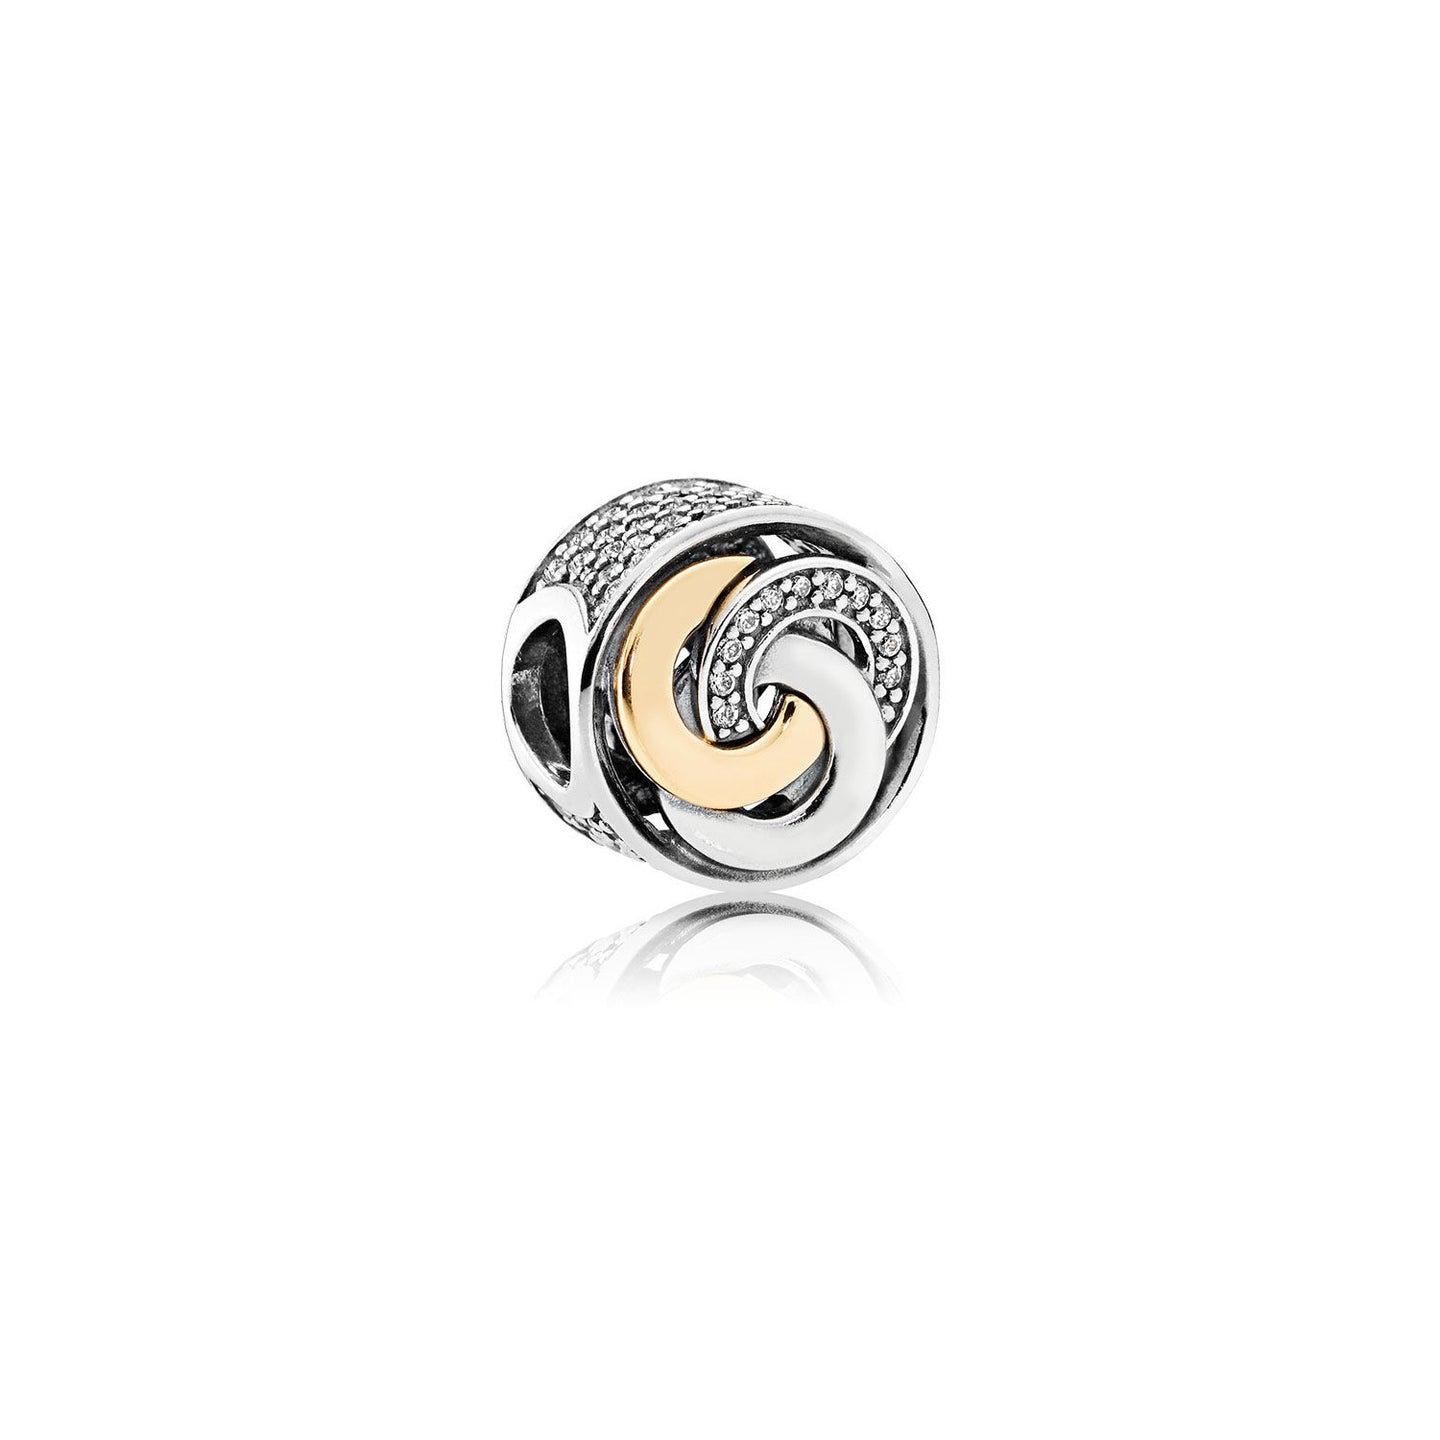 Interlinked Circles Charm - Sterling Silver, Cubic Zirconia Gemstones - ARJWVC1051RD - ARCADIO LIFESTYLE